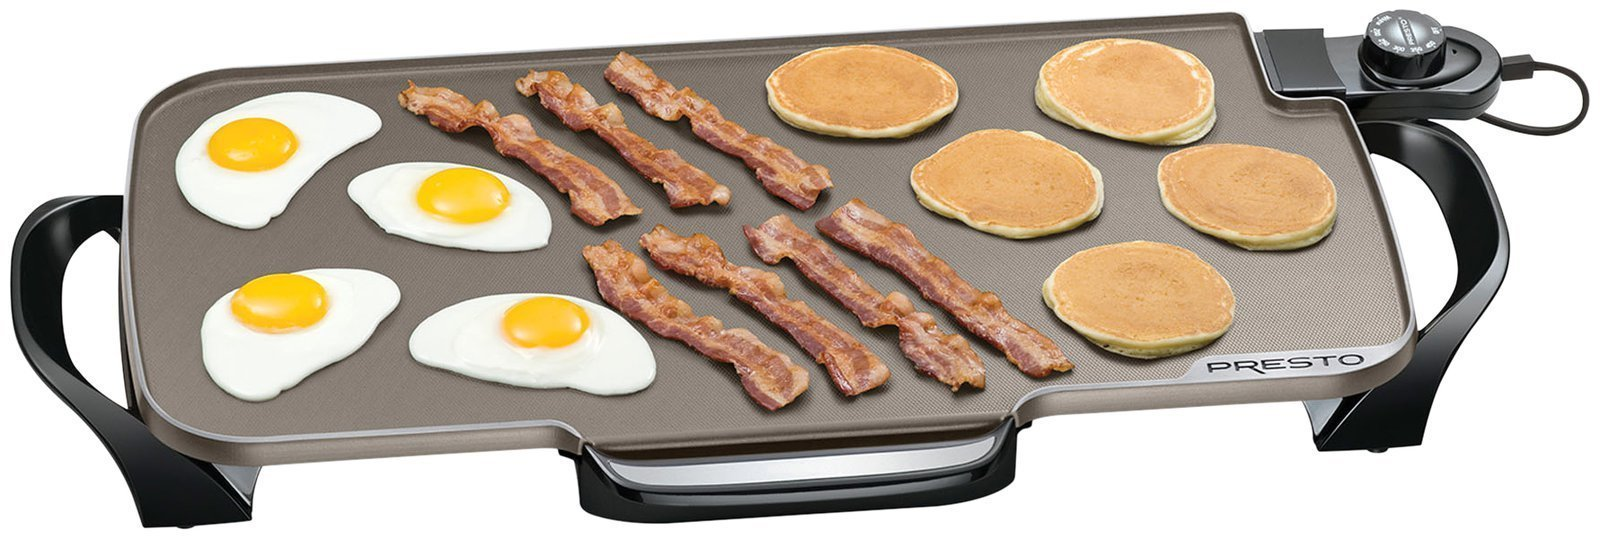 Presto 07062 Ceramic 22-inch Electric Griddle with removable handles Black by Presto (Image #2)